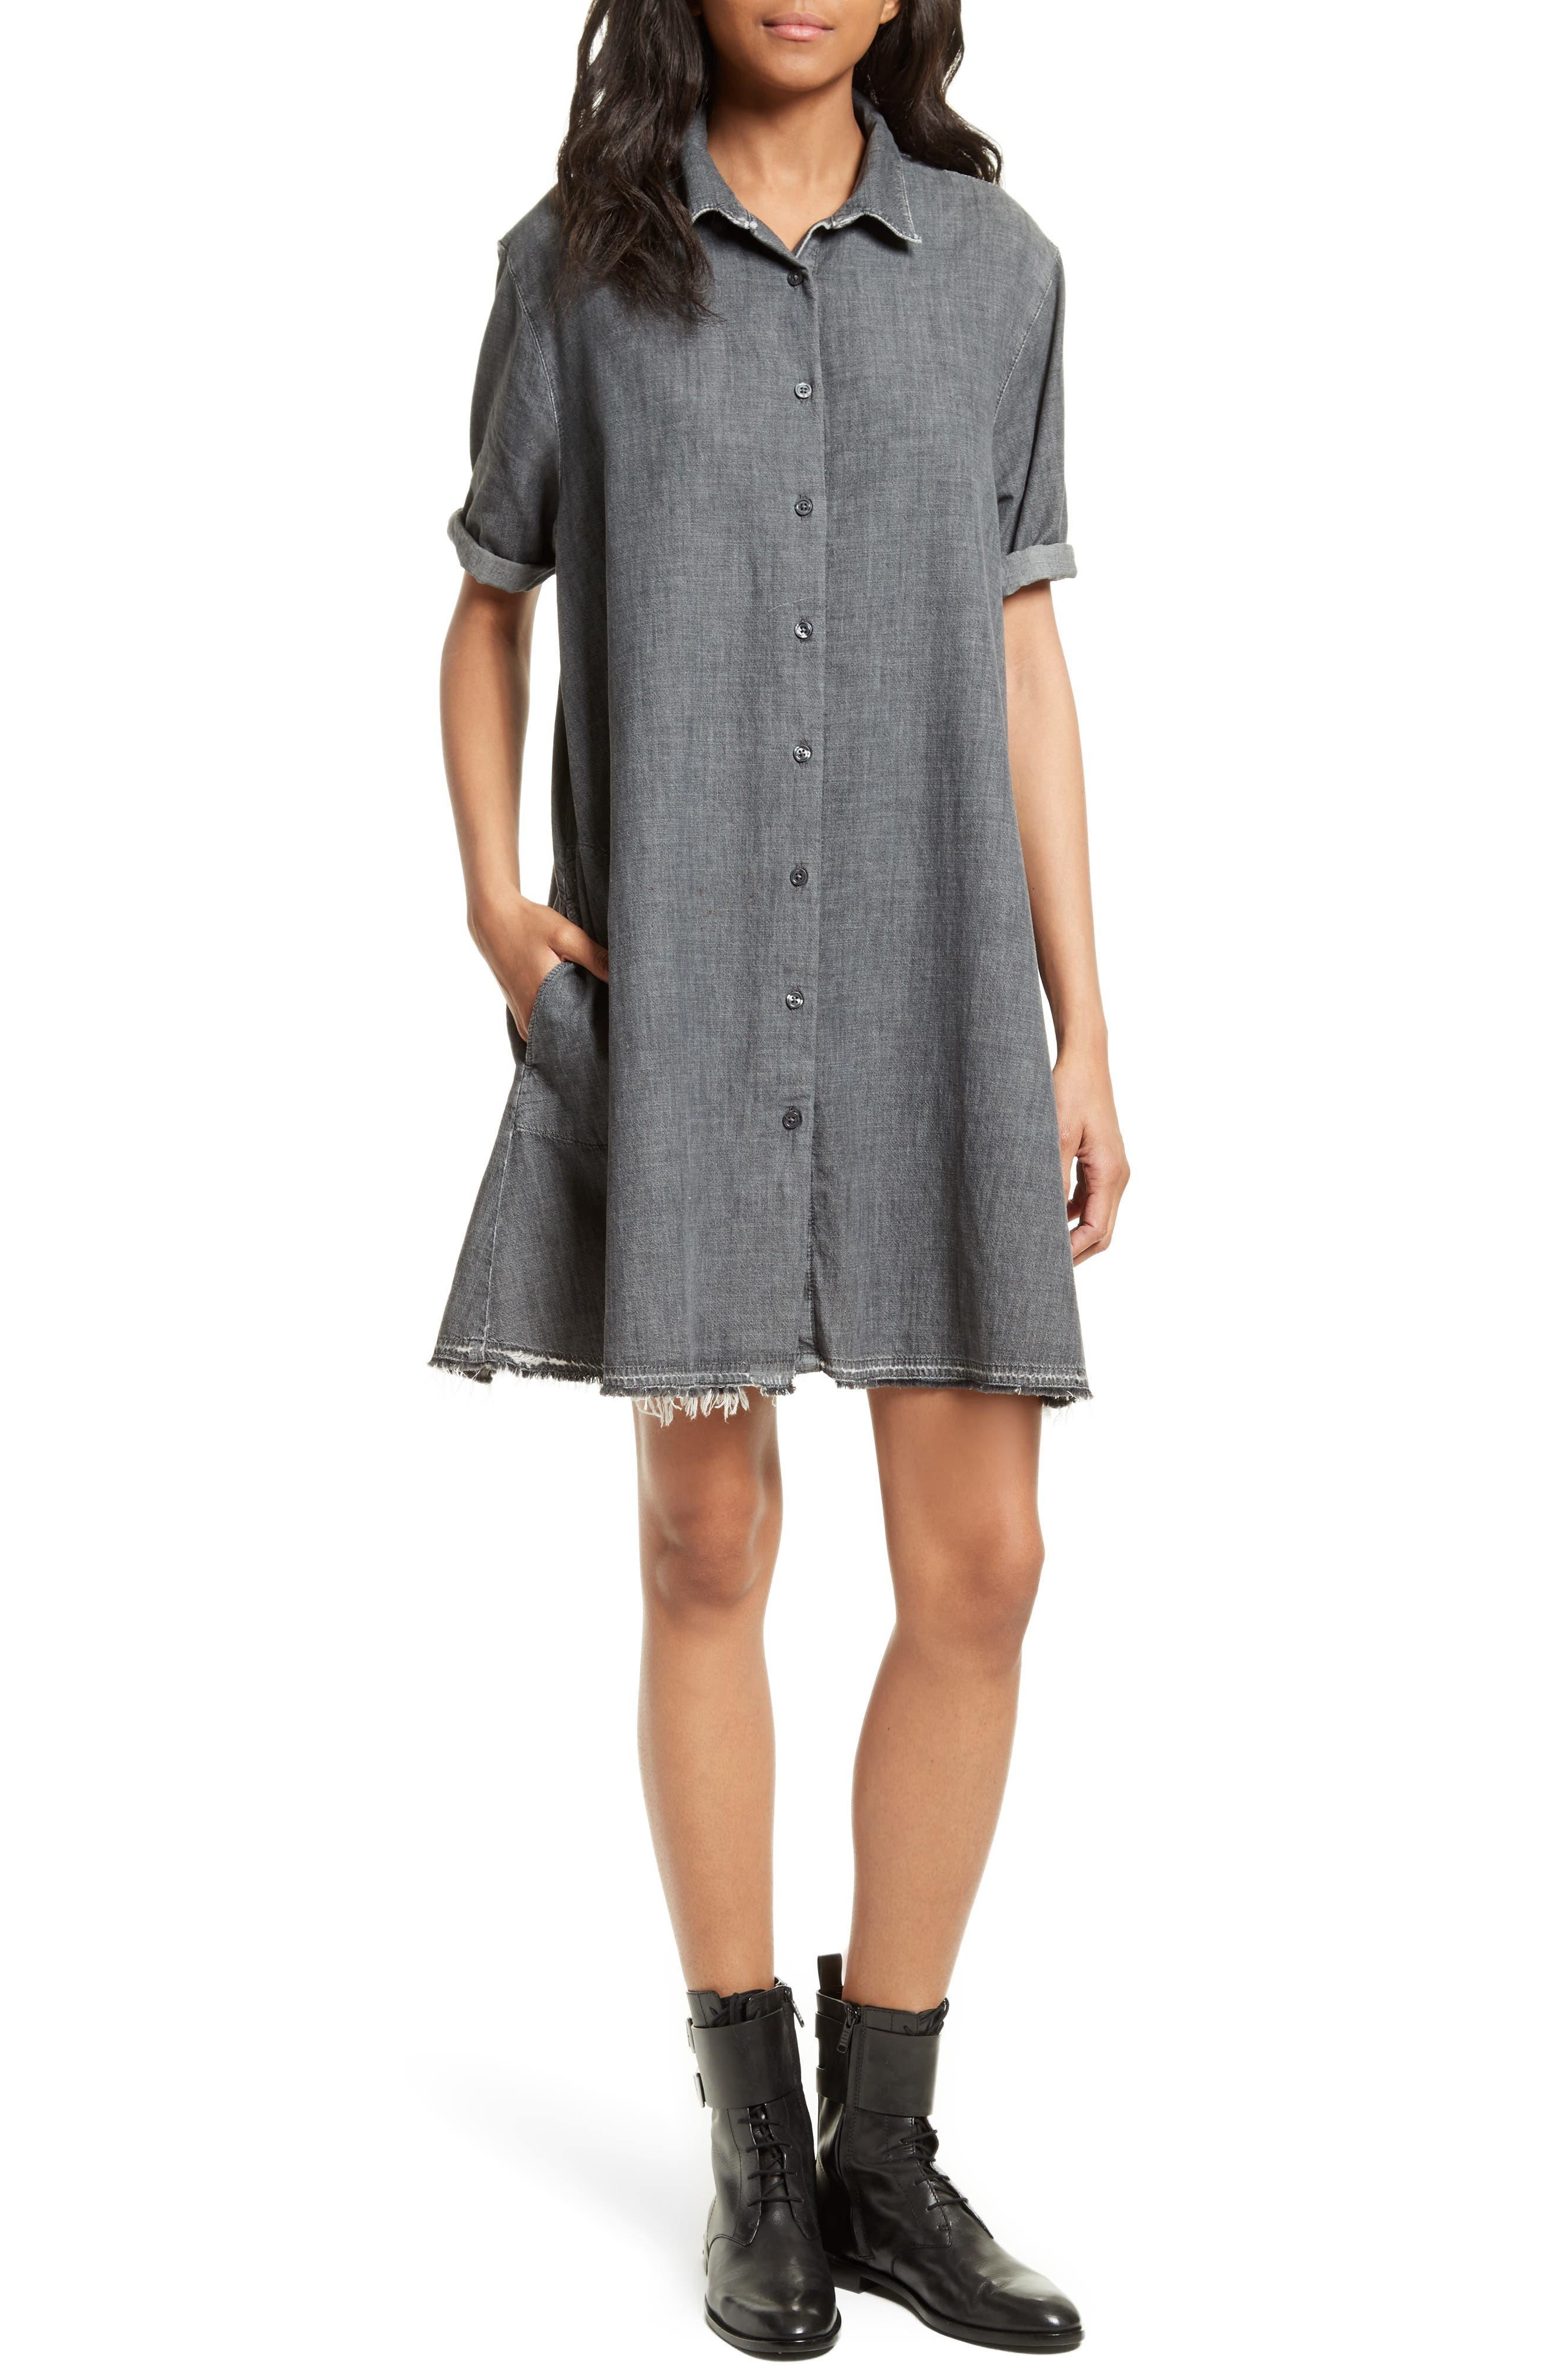 THE GREAT. The Bias Shirtdress